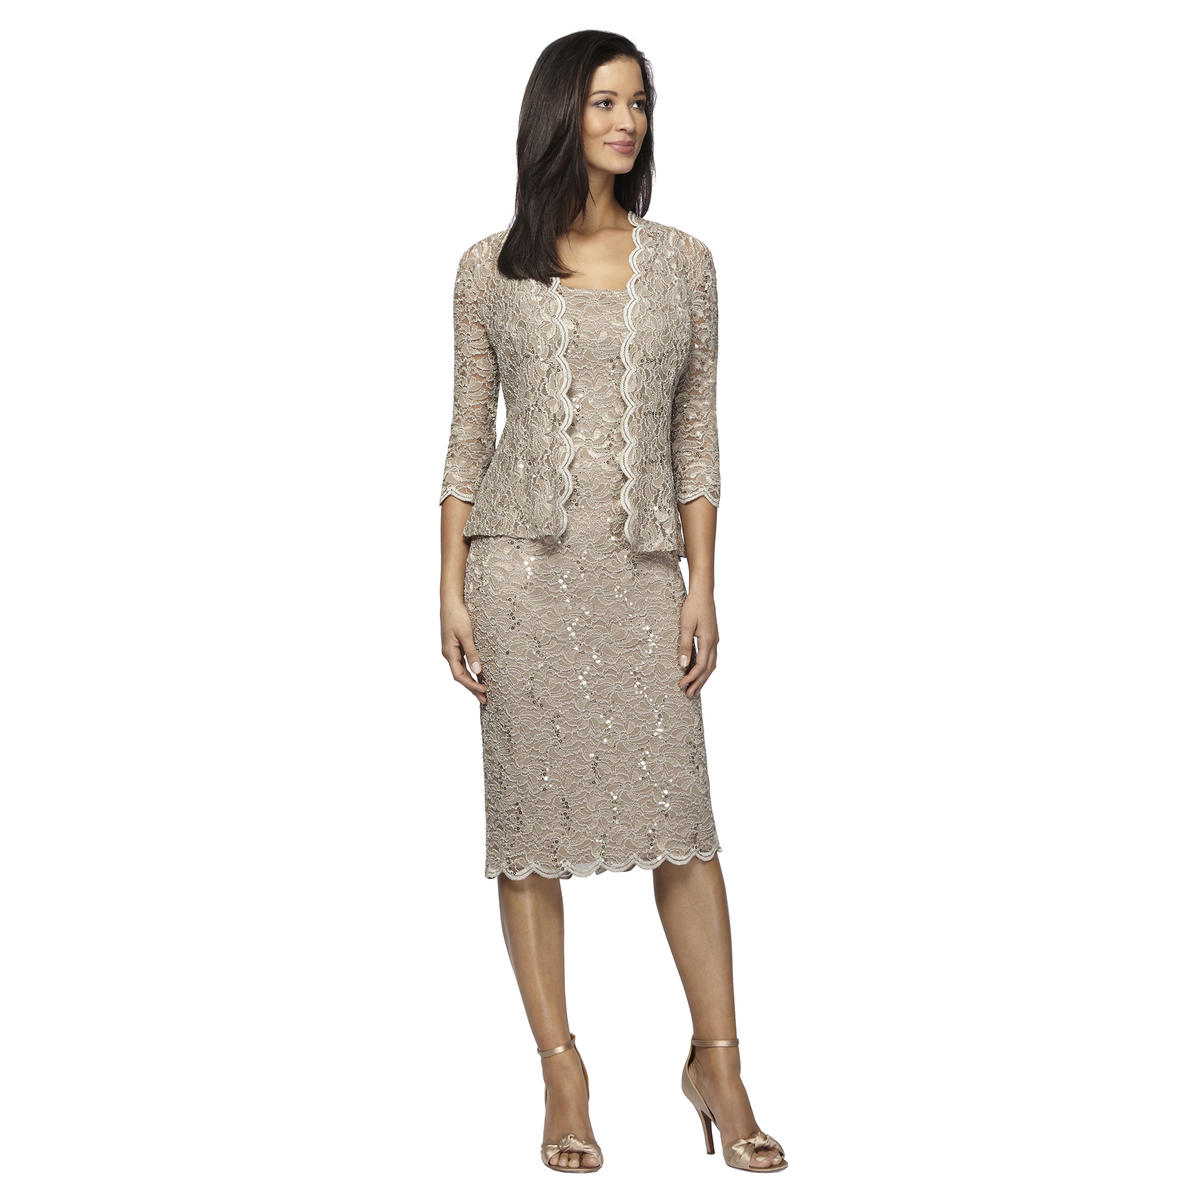 baf6ece88709 ALEX APPAREL GROUP INC - Sequined Lace Sheath Dress with Jacket